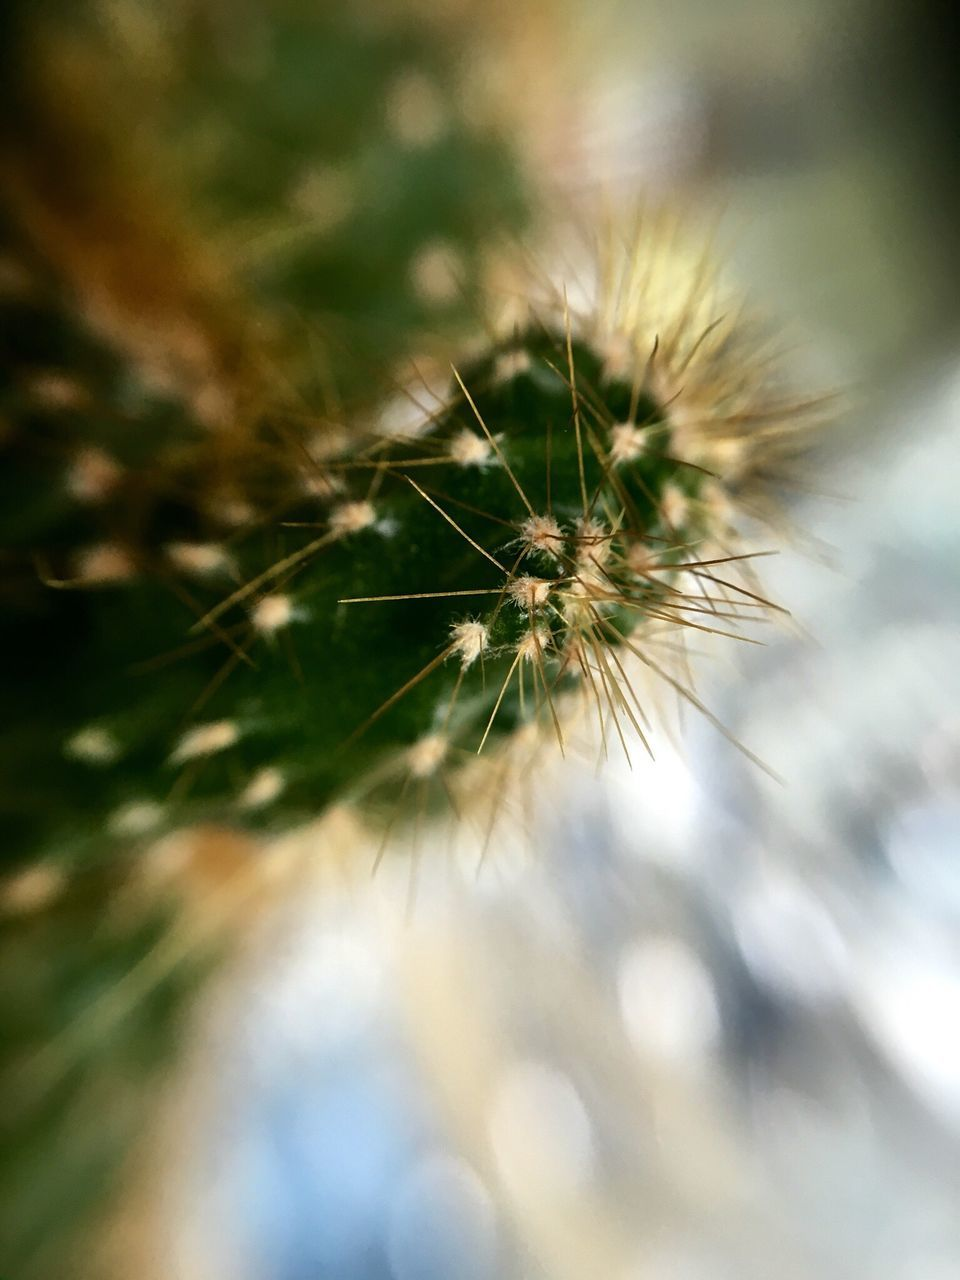 close-up, nature, selective focus, no people, growth, outdoors, day, animal themes